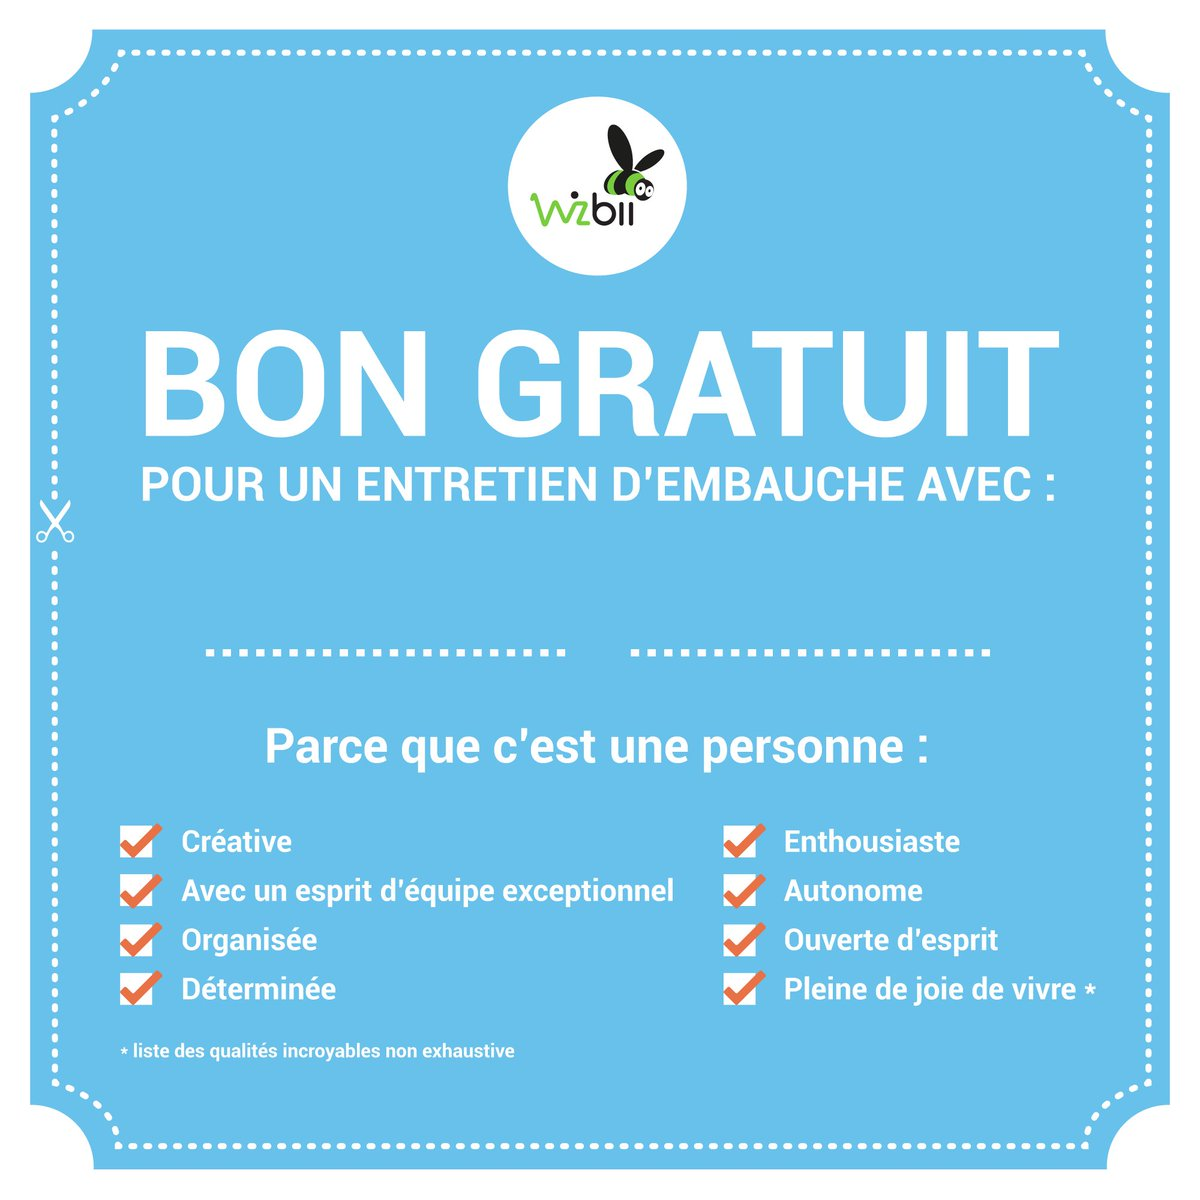 0 replies 4 retweets 3 likes - Point Mariage St Egreve